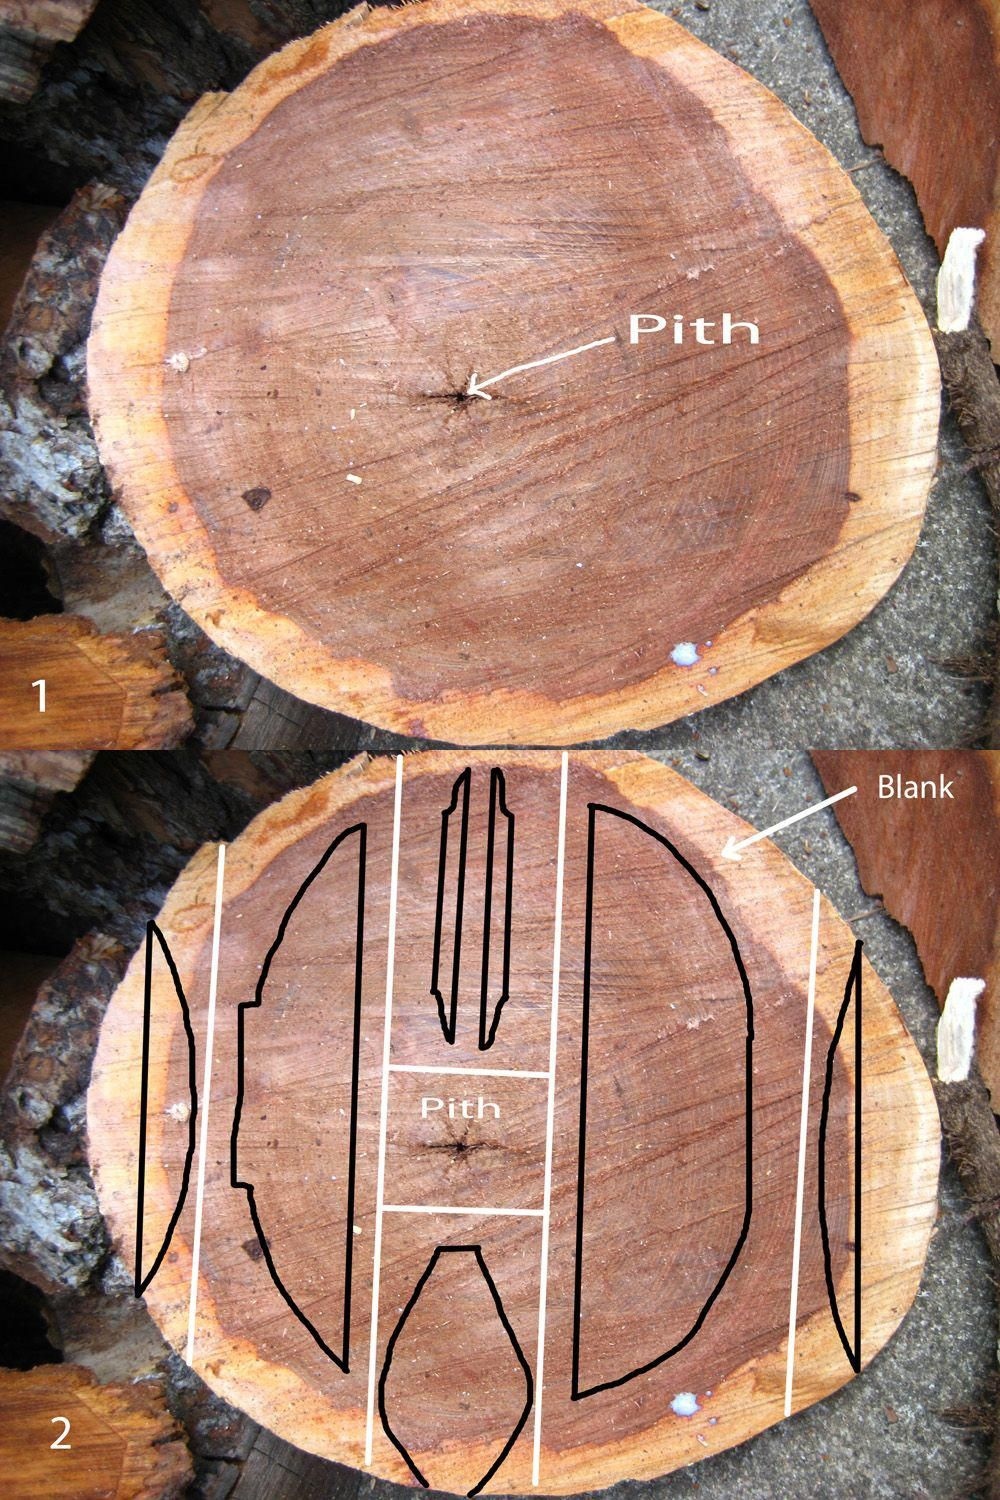 Park Art My WordPress Blog_How To Make A Wooden Bowl With A Router